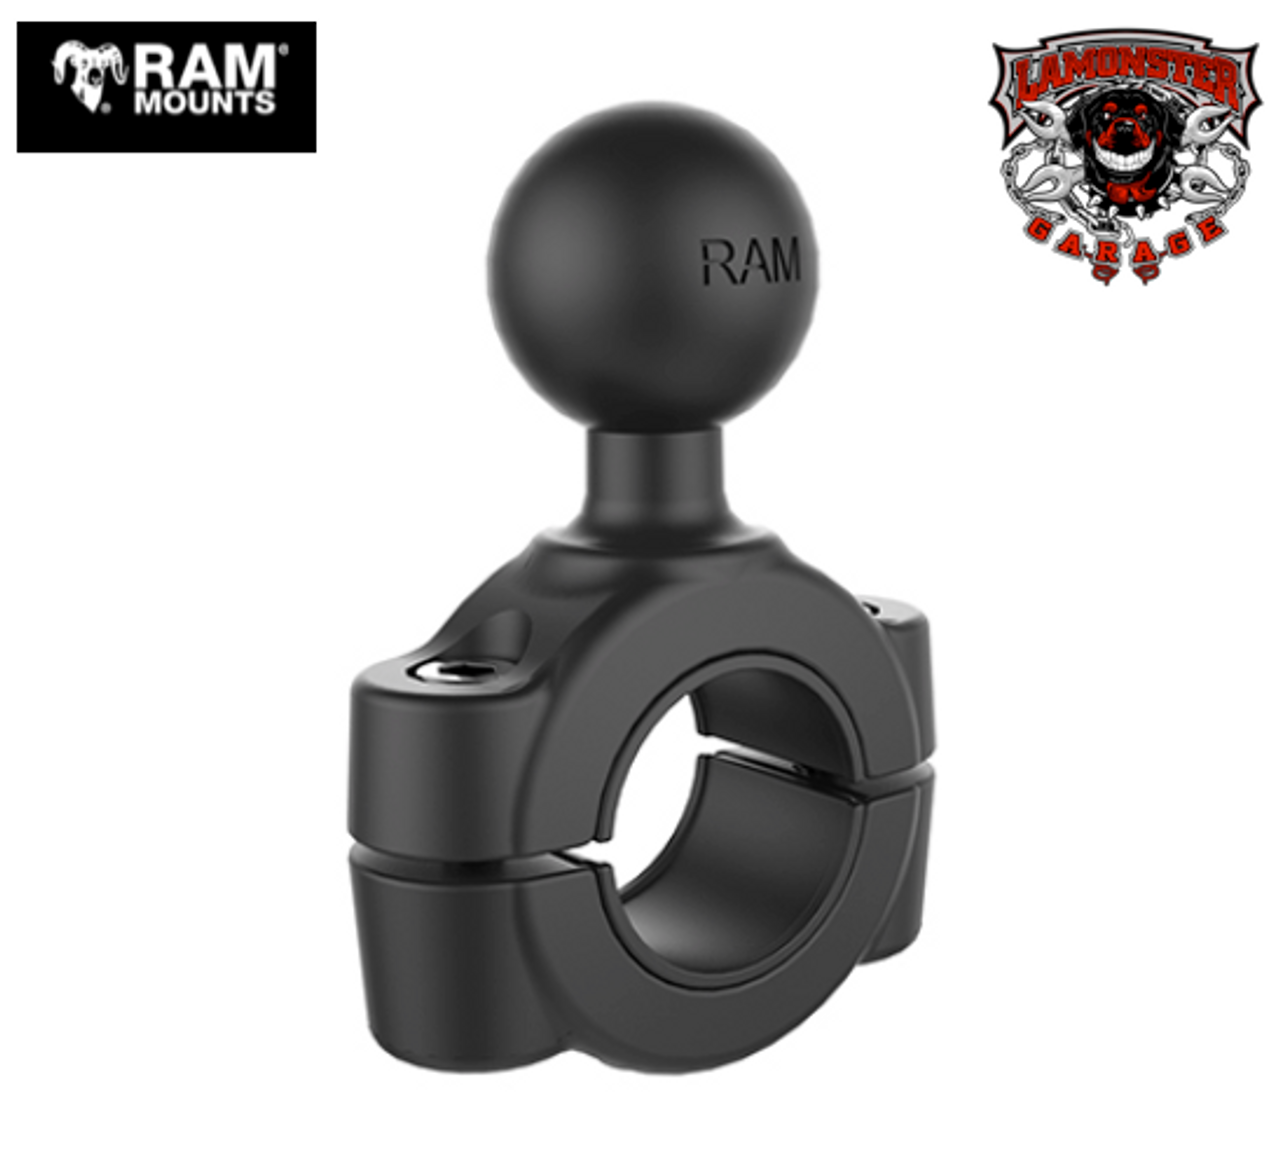 "RAM® 3/4"" - 1"" Diameter Handlebar/Rail Base with 1"" Ball (RAM-751U) Fits Can Am Ryker Handlebars Accommodates Handlebars 0.75"" to 1"" in diameter"